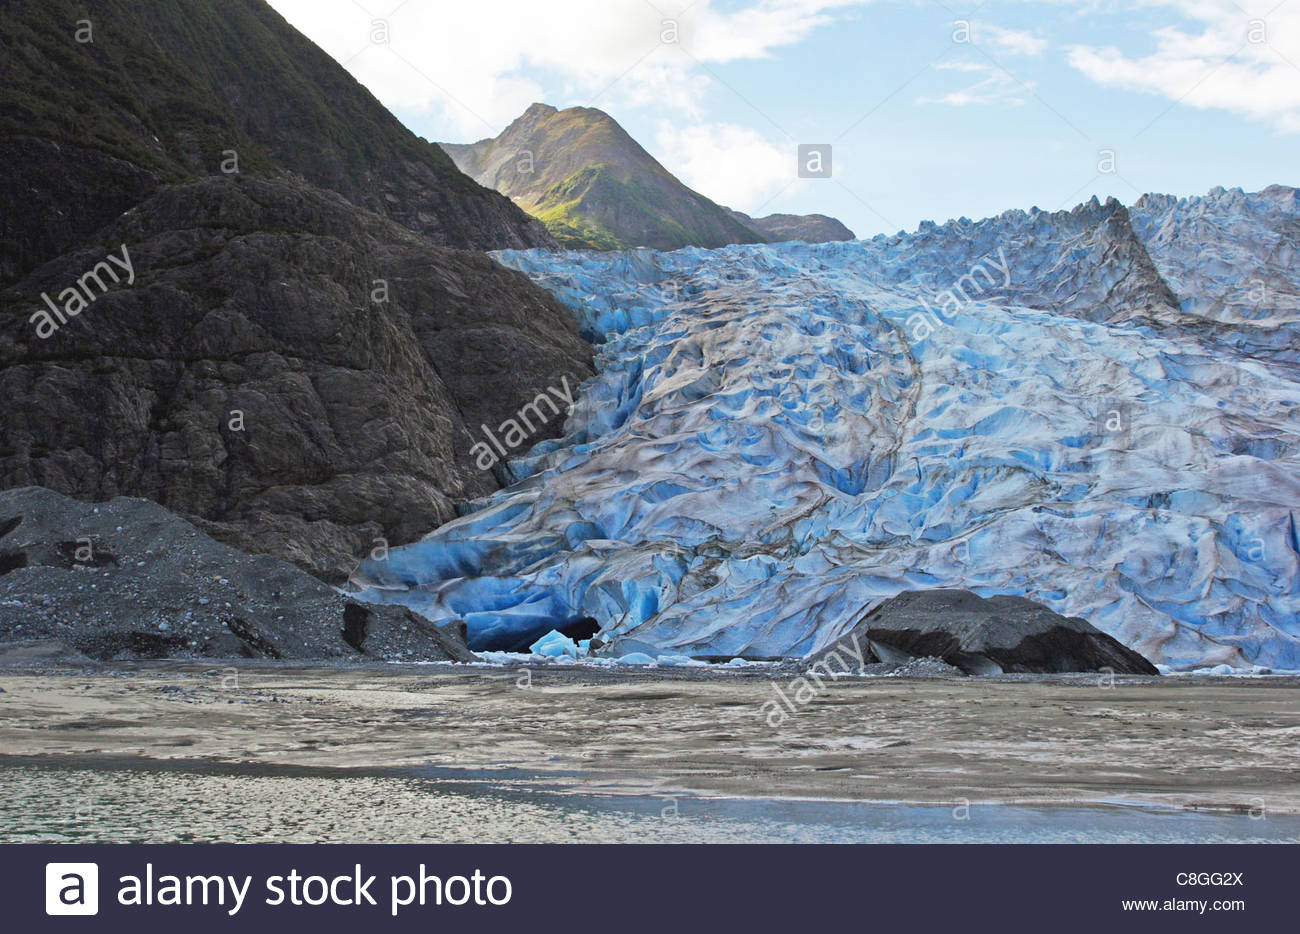 The terminus or advancing front of Davidson Glacier. - Stock Image